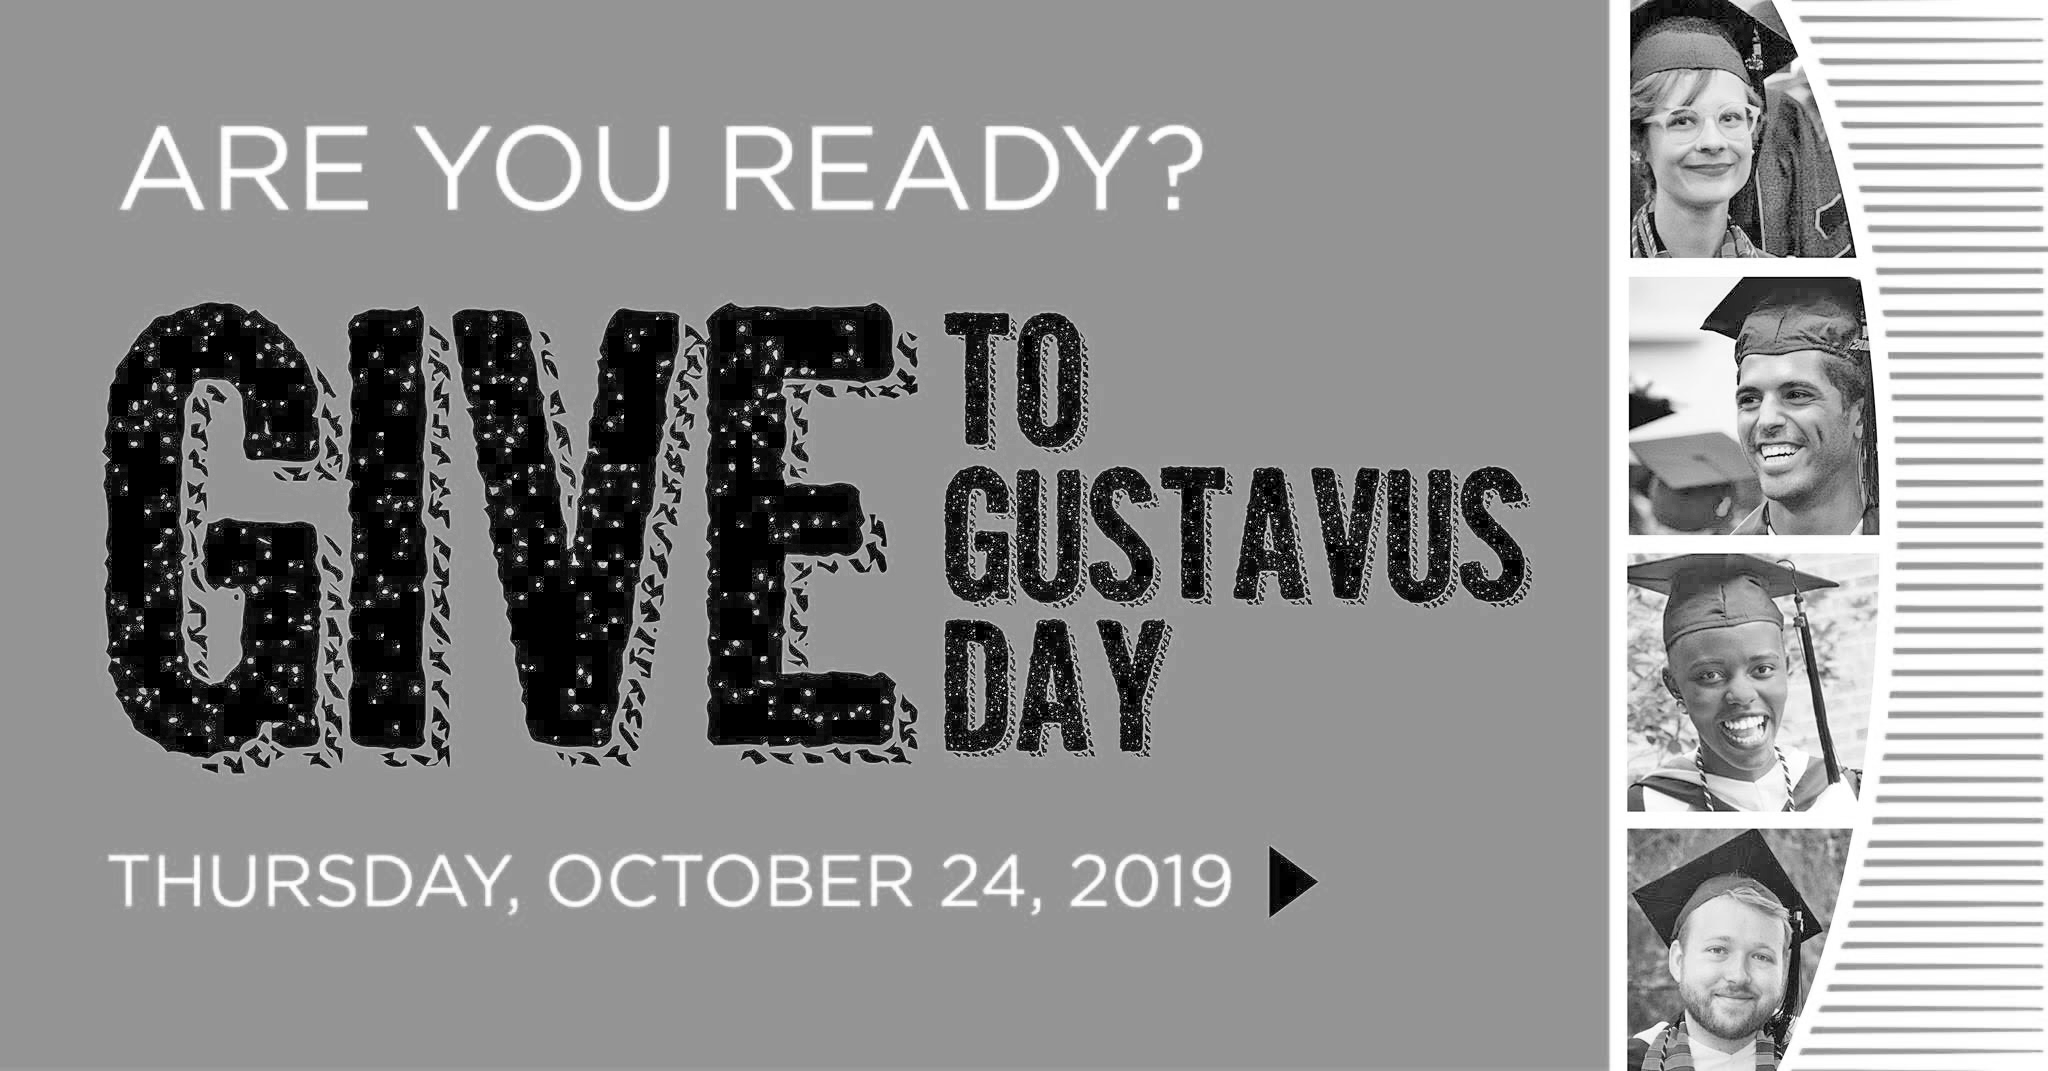 Give to Gustavus Day starts Oct. 24.